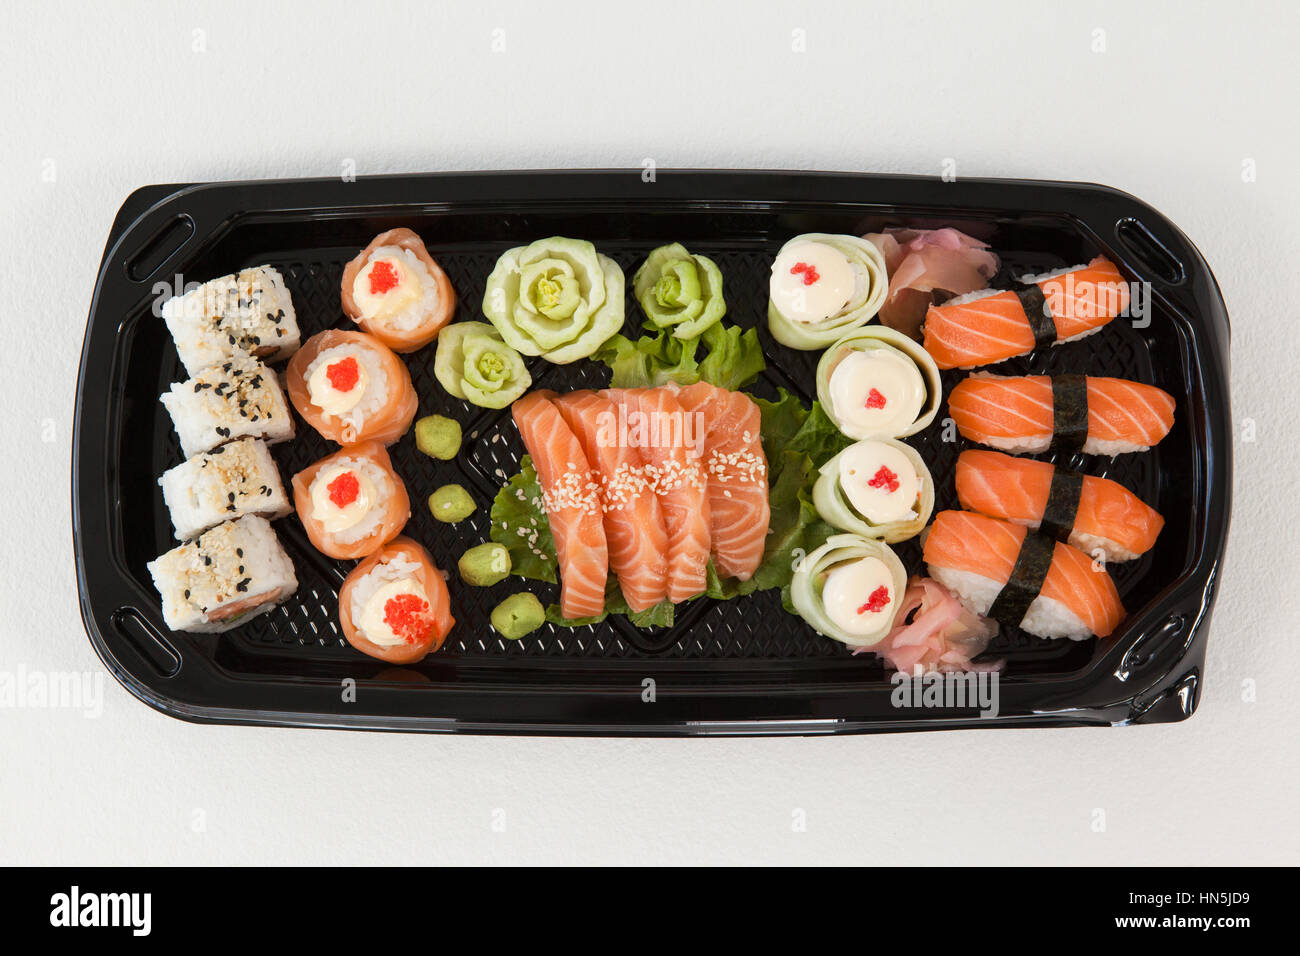 Assorted sushi set served in black box against white background - Stock Image